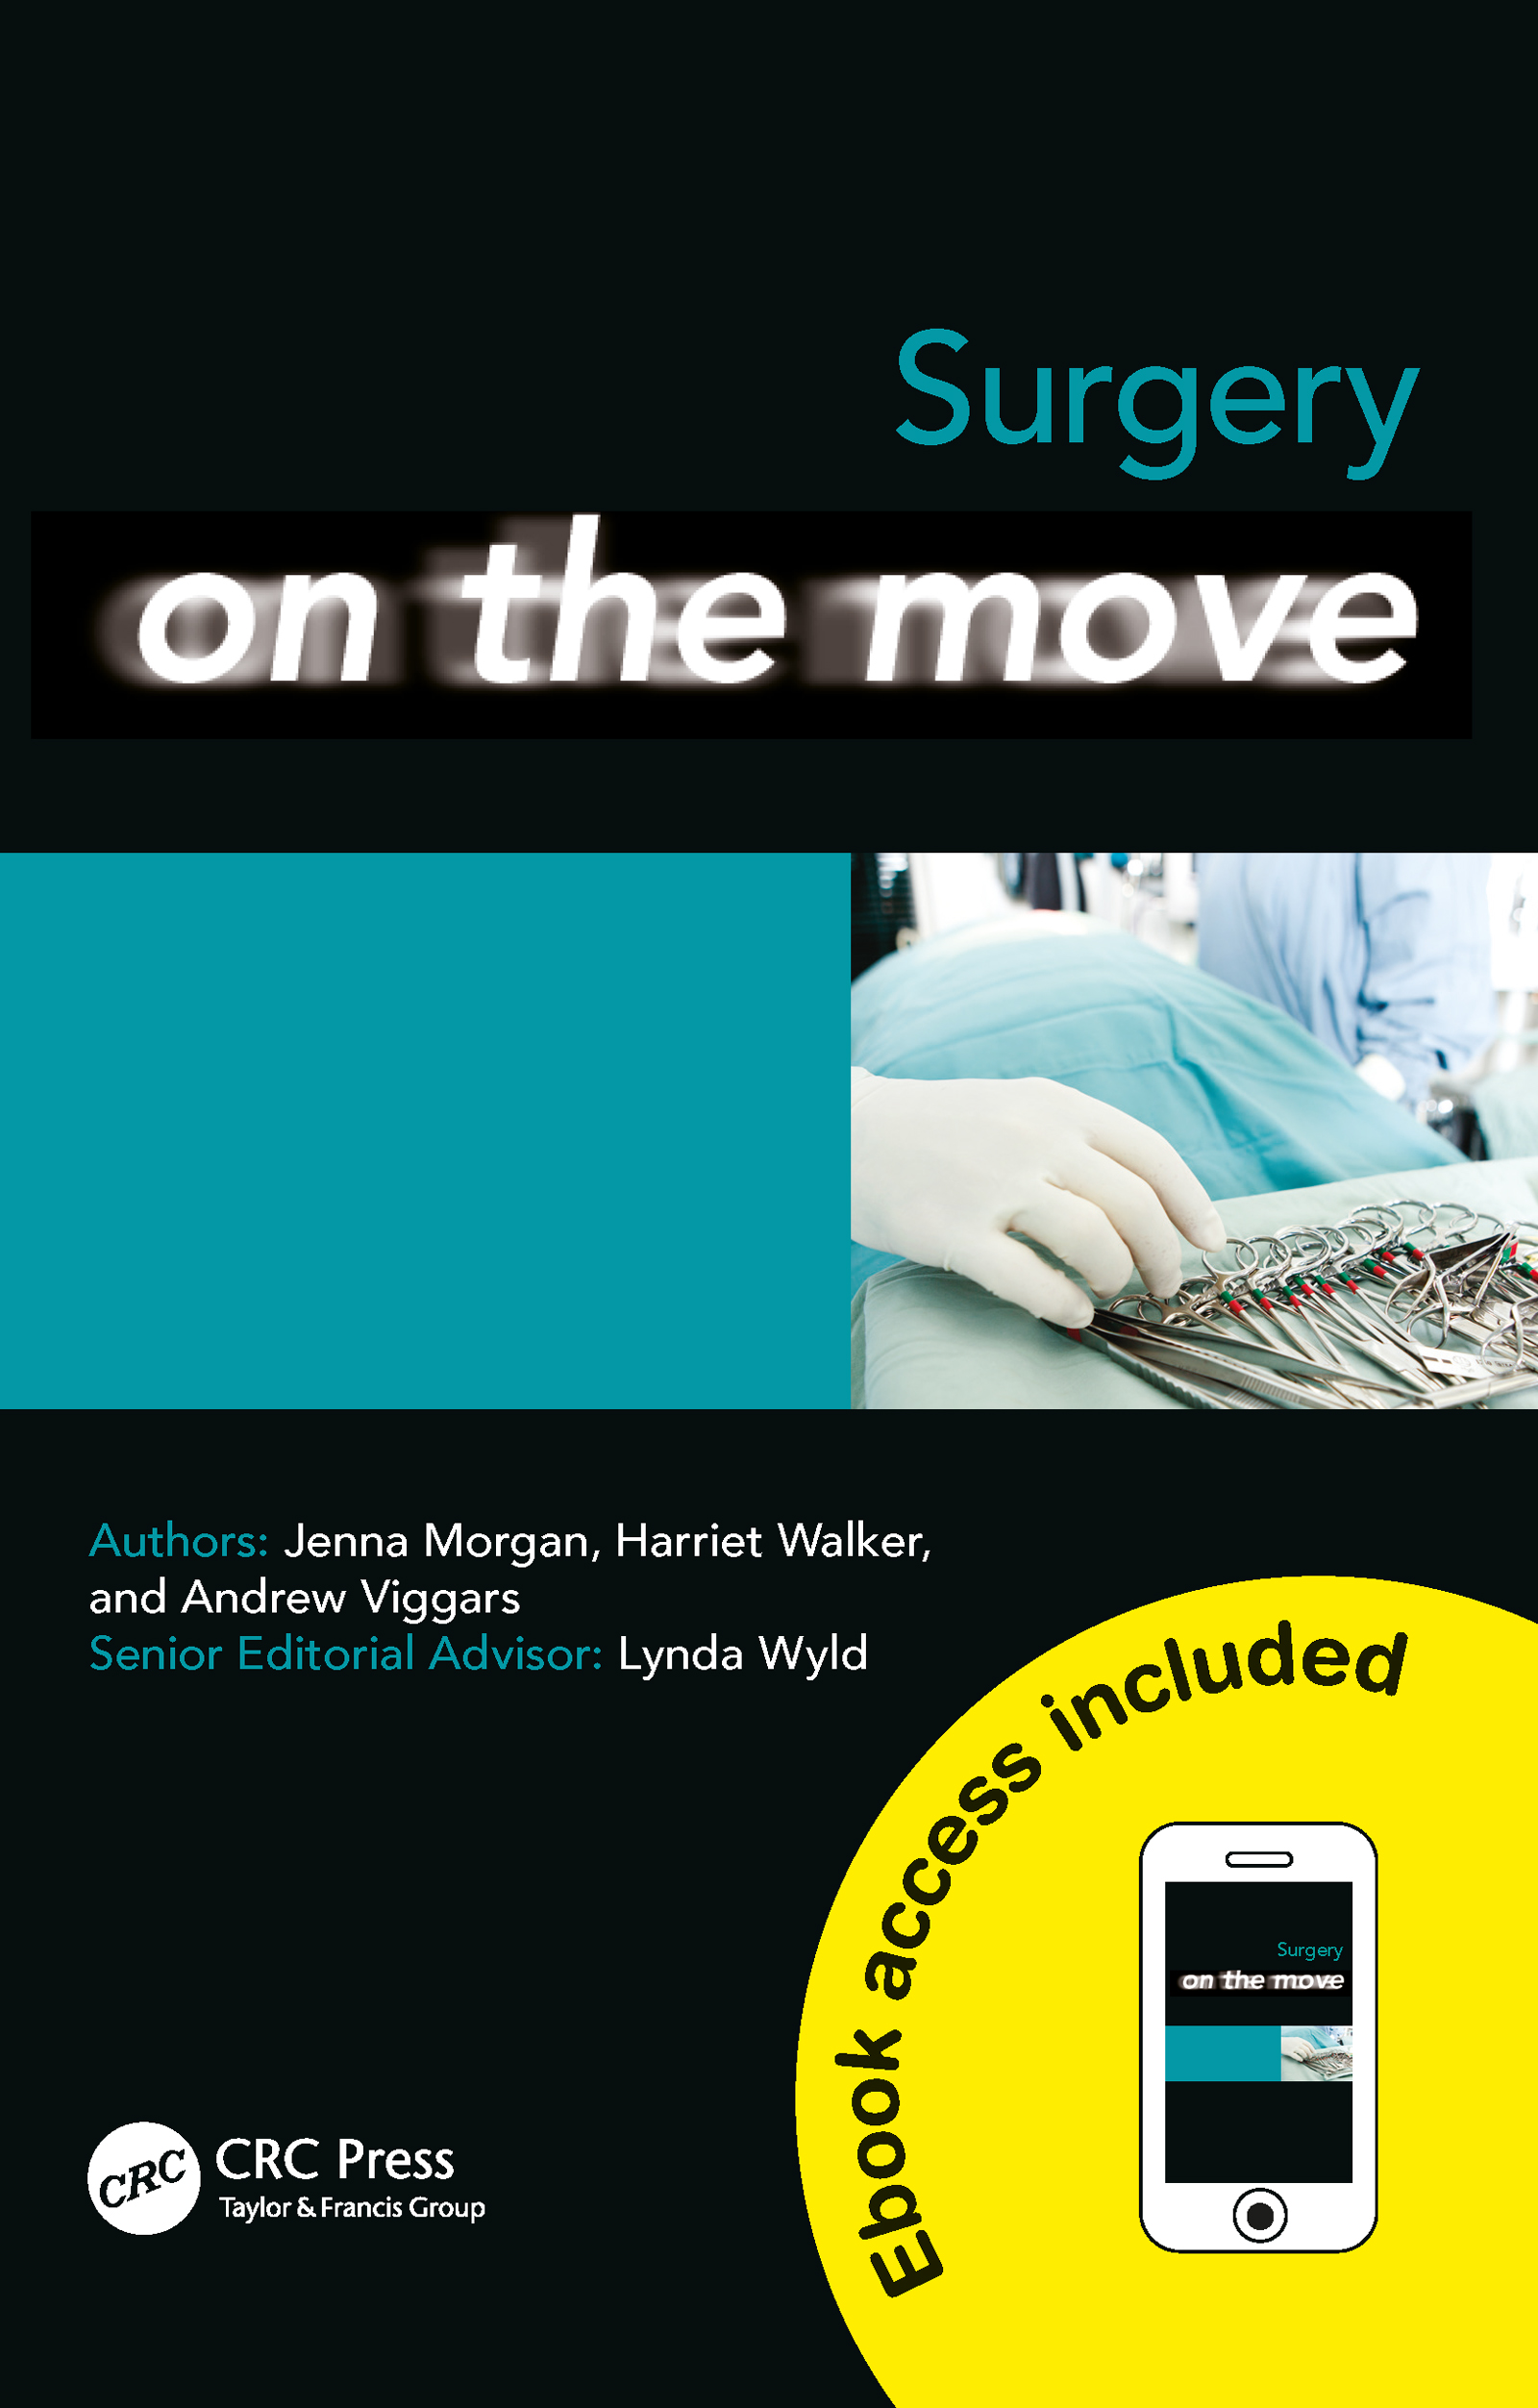 Surgery on the Move (Pack - Book and Ebook) book cover